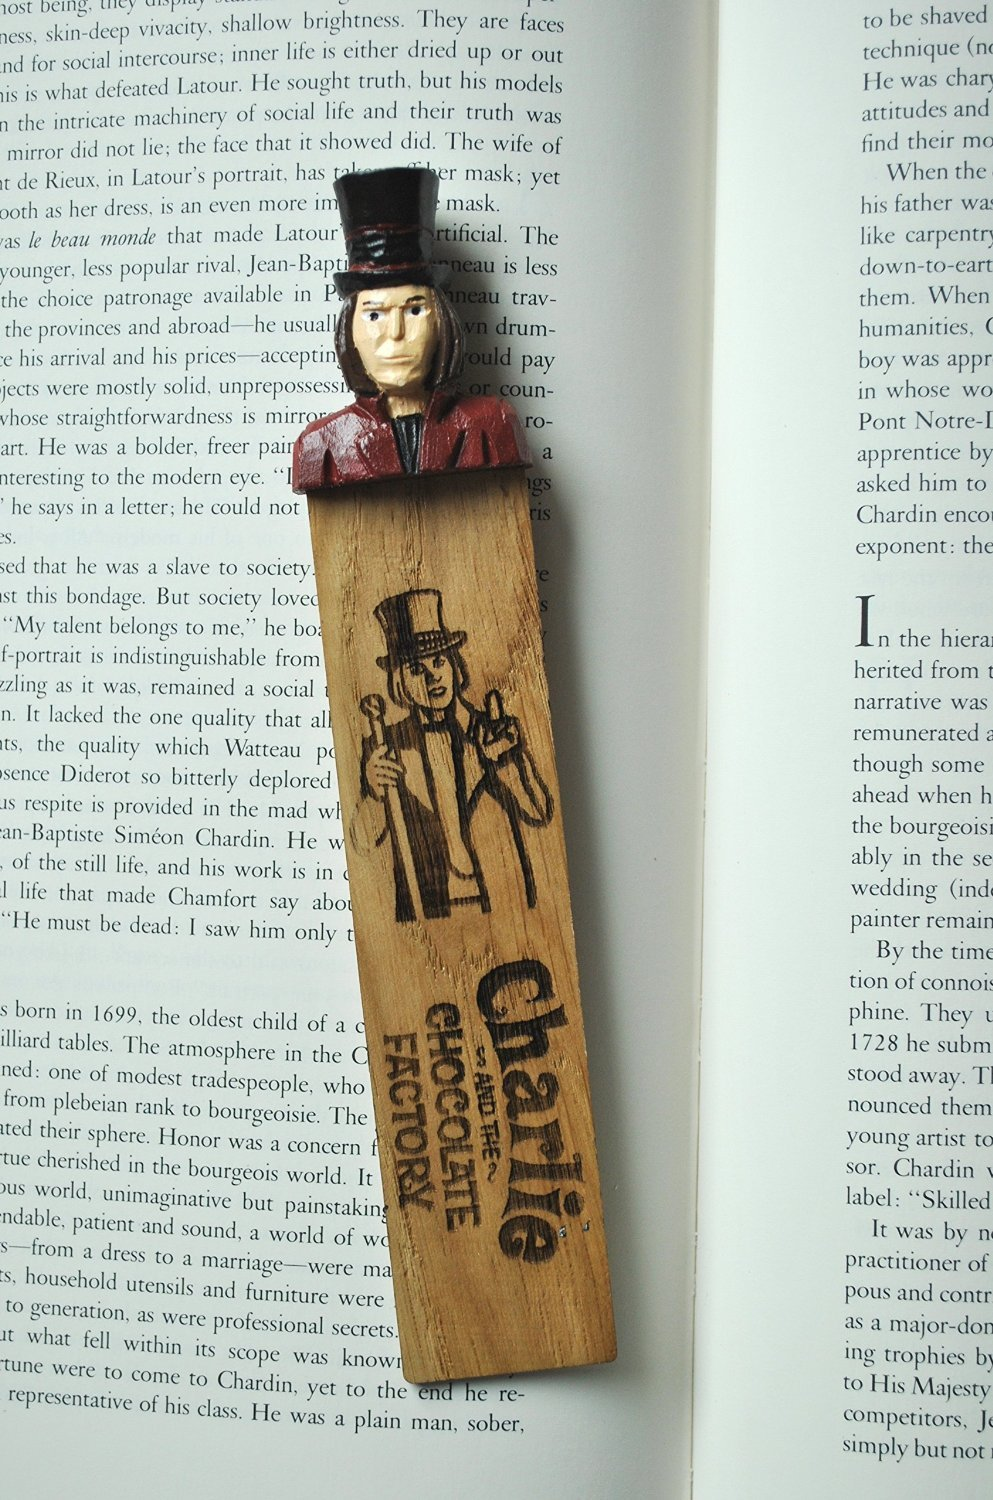 Amazon.com: Charlie and the Chocolate Factory Real Wooden ...